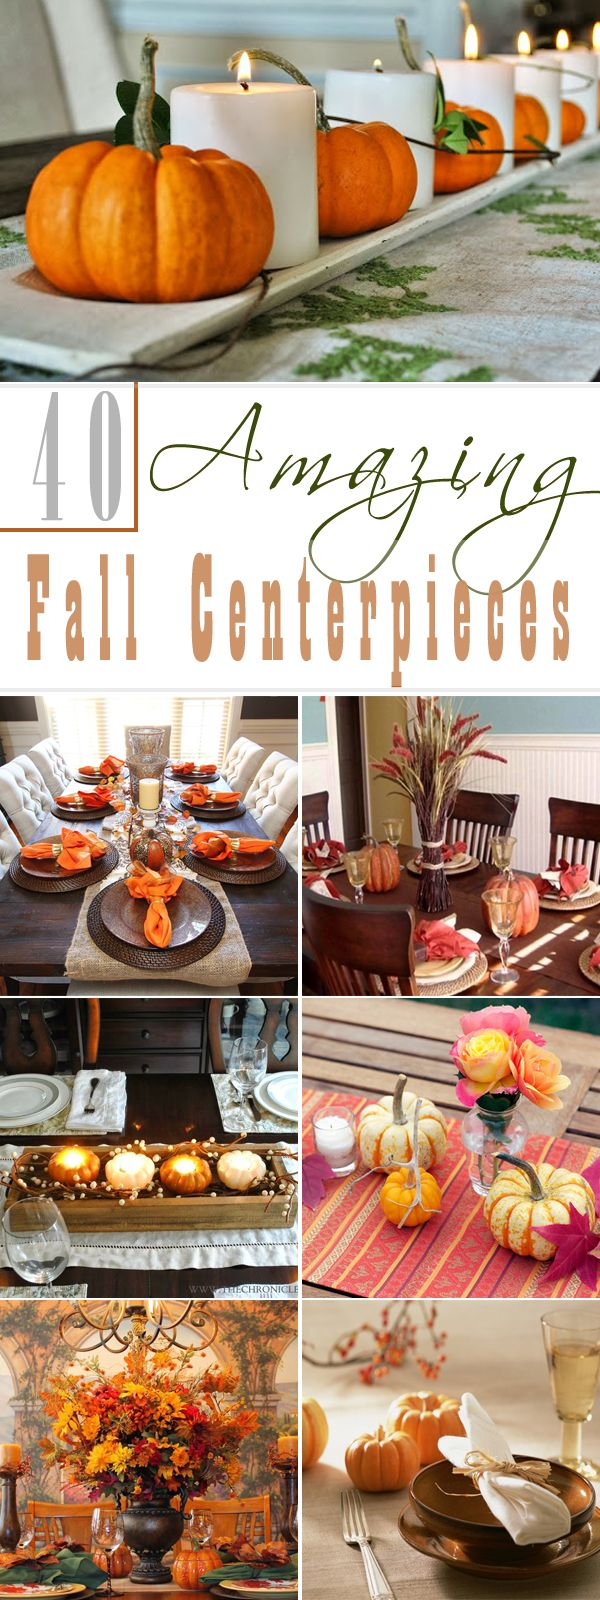 40 Amazing Fall Centerpieces For Dining Room Table Thanksgiving Dining Thanksgiving Table Decorations Thanksgiving Table Settings